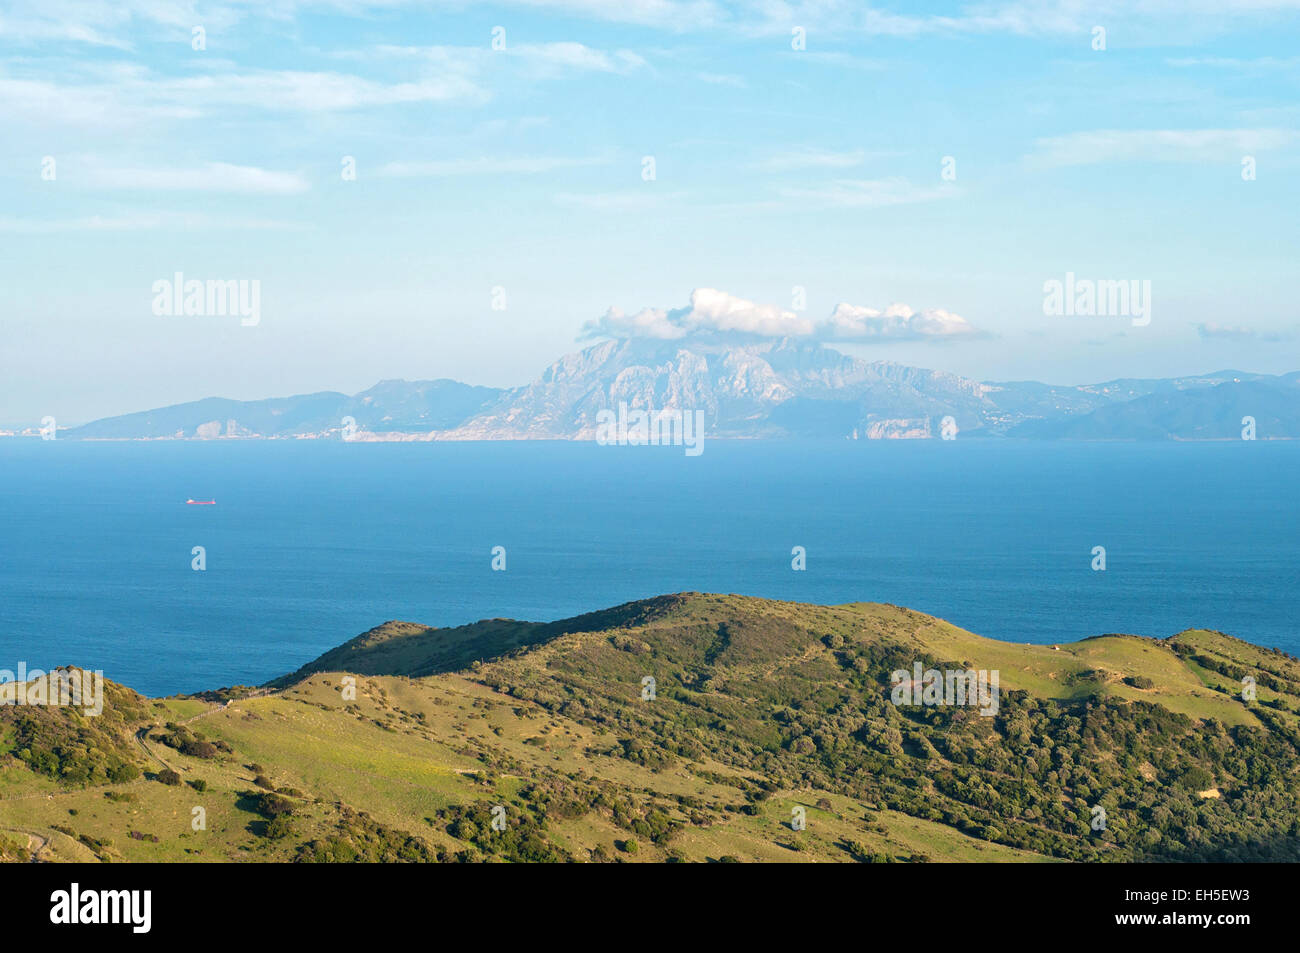 View africa morocco strait gibraltar stock photos view - Moroccan port on the strait of gibraltar ...